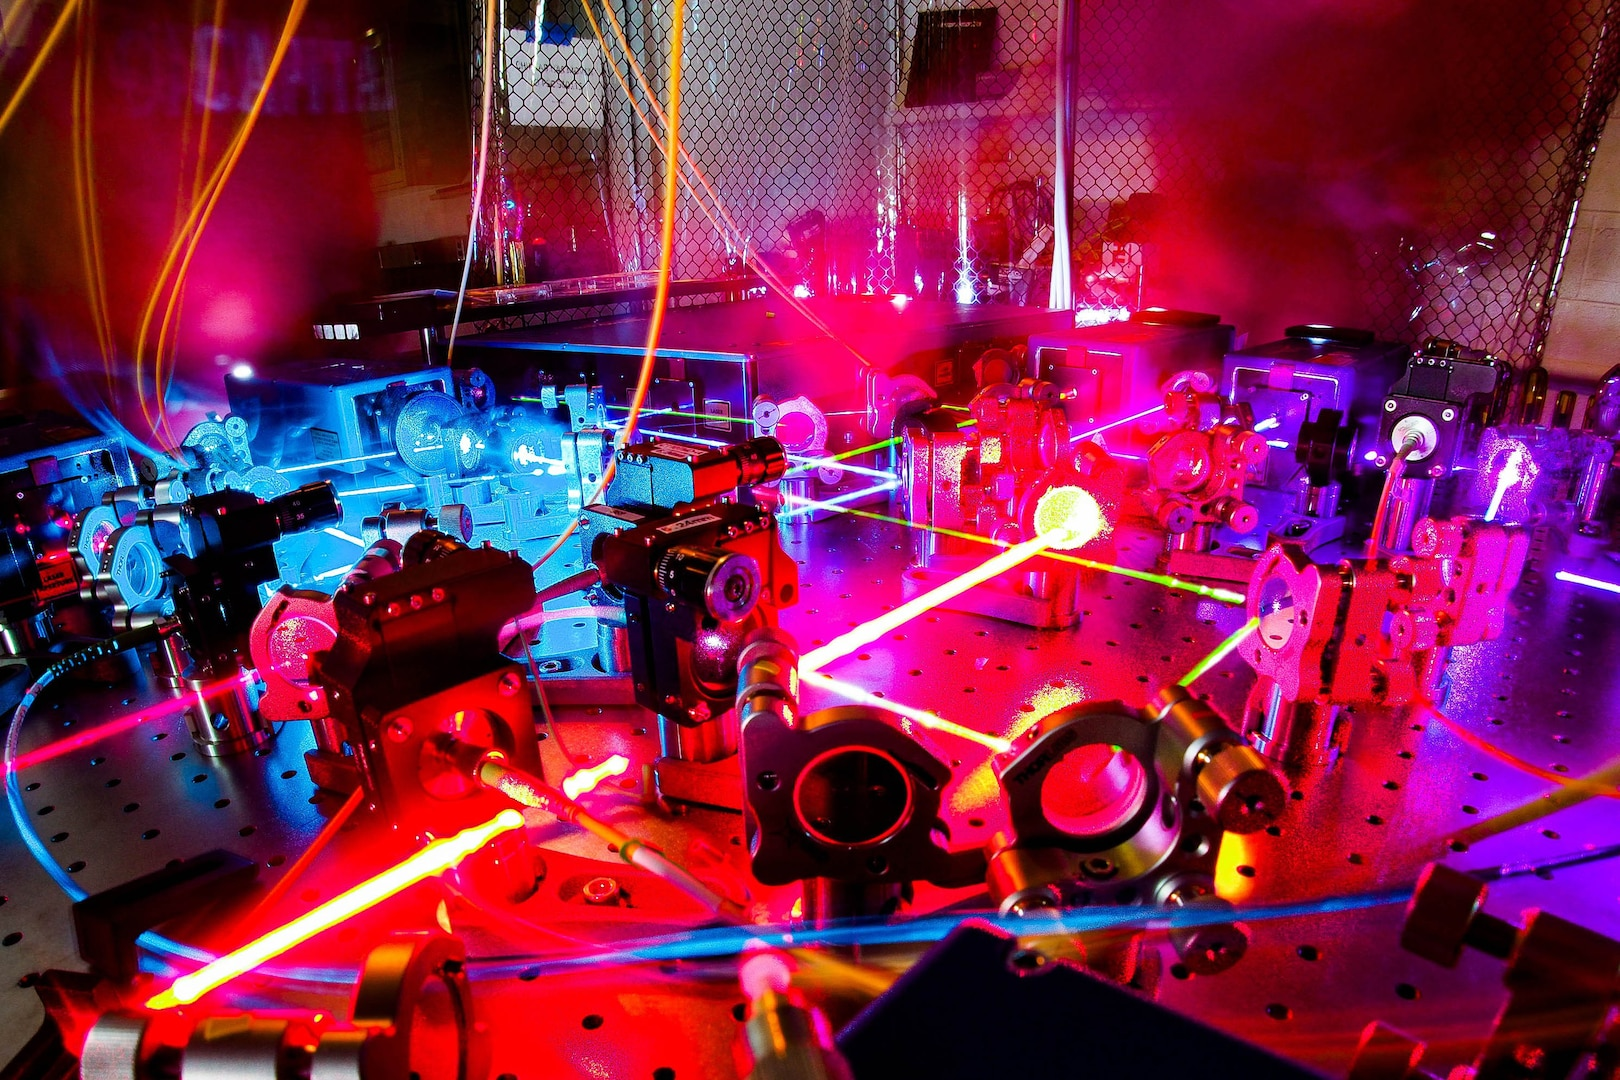 A large room filled with equipment is bathed in colorful lights.